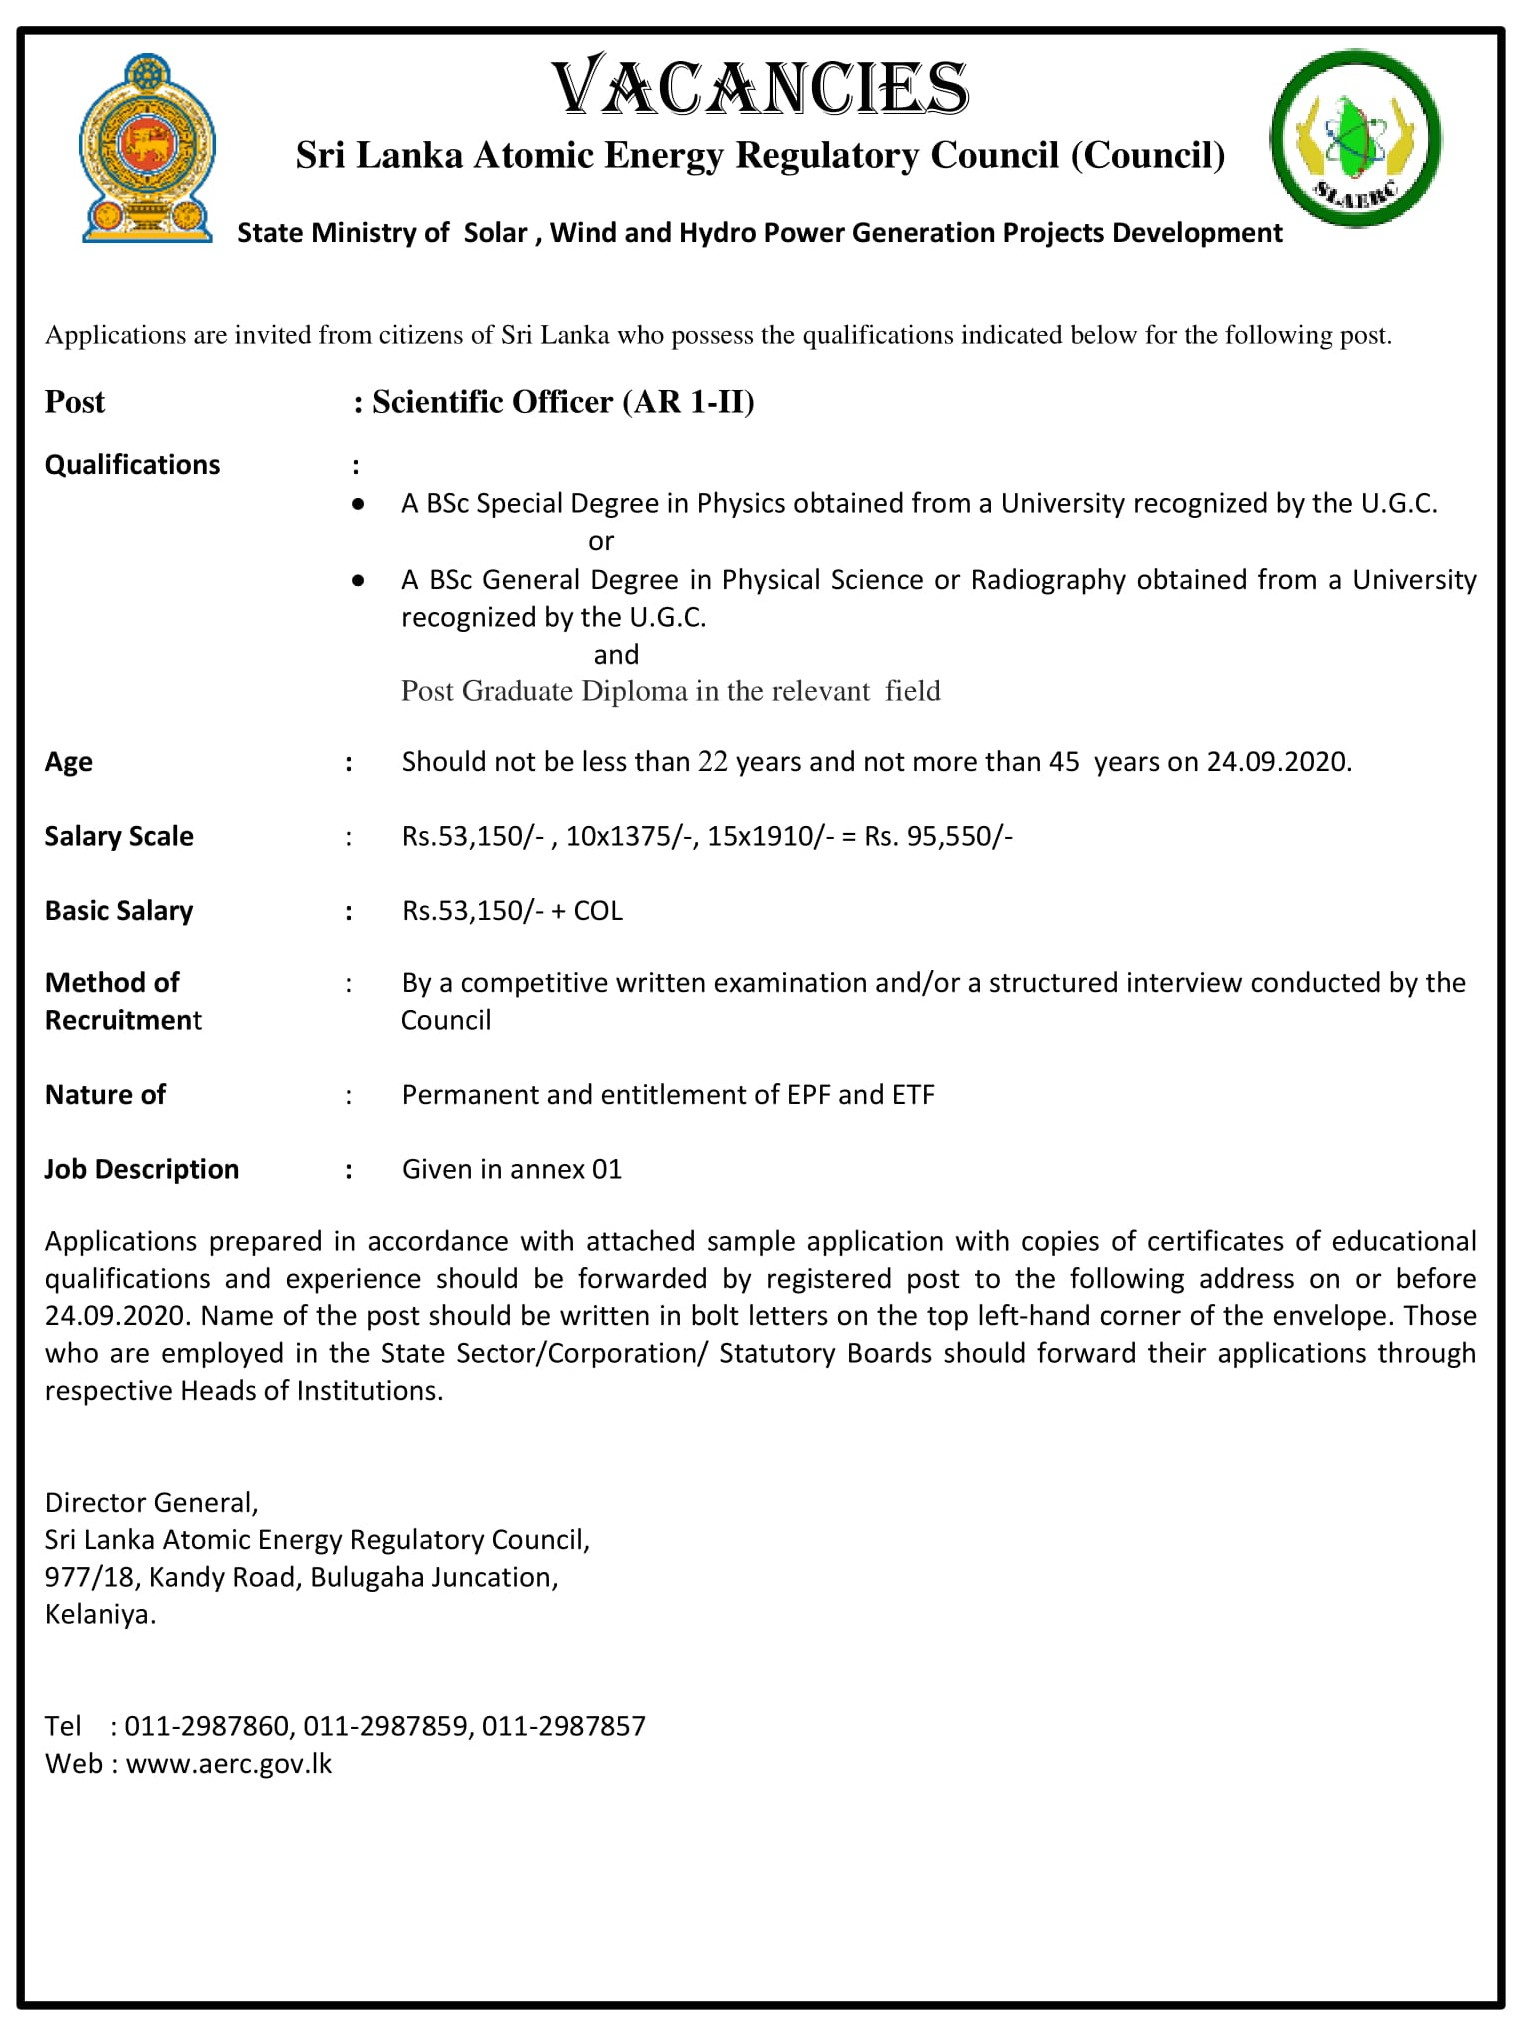 Scientific Officer - Sri Lanka Atomic Energy Regulatory Council